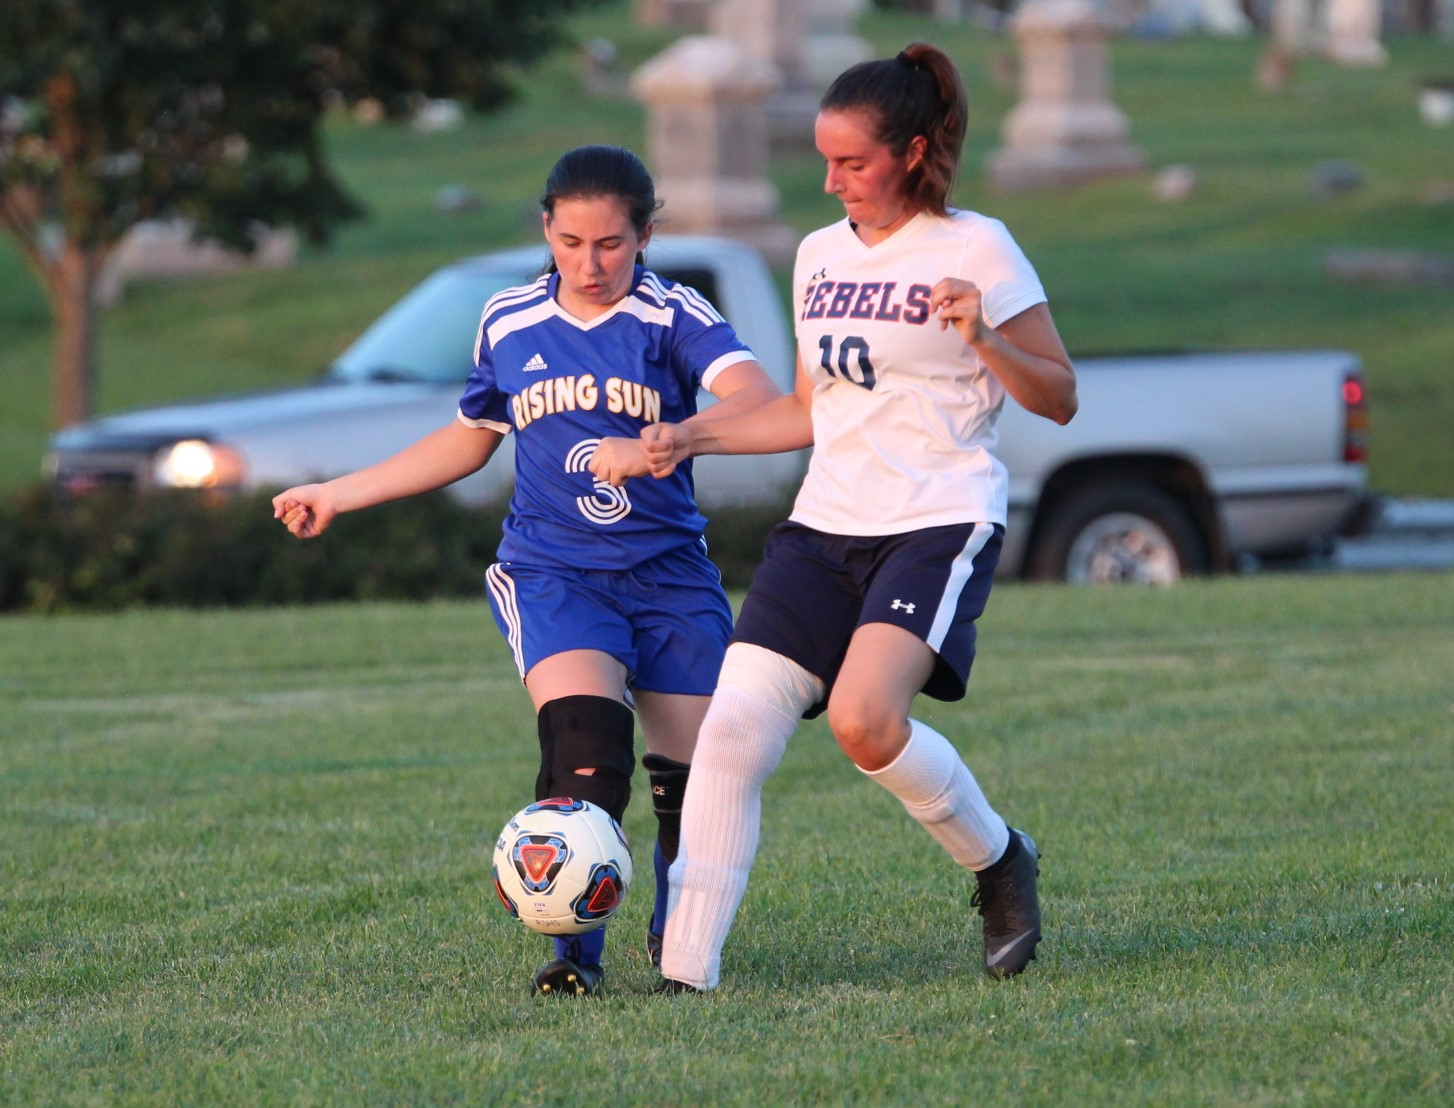 Lady Shiner's allow 7 goals, Lose to Lady Rebels